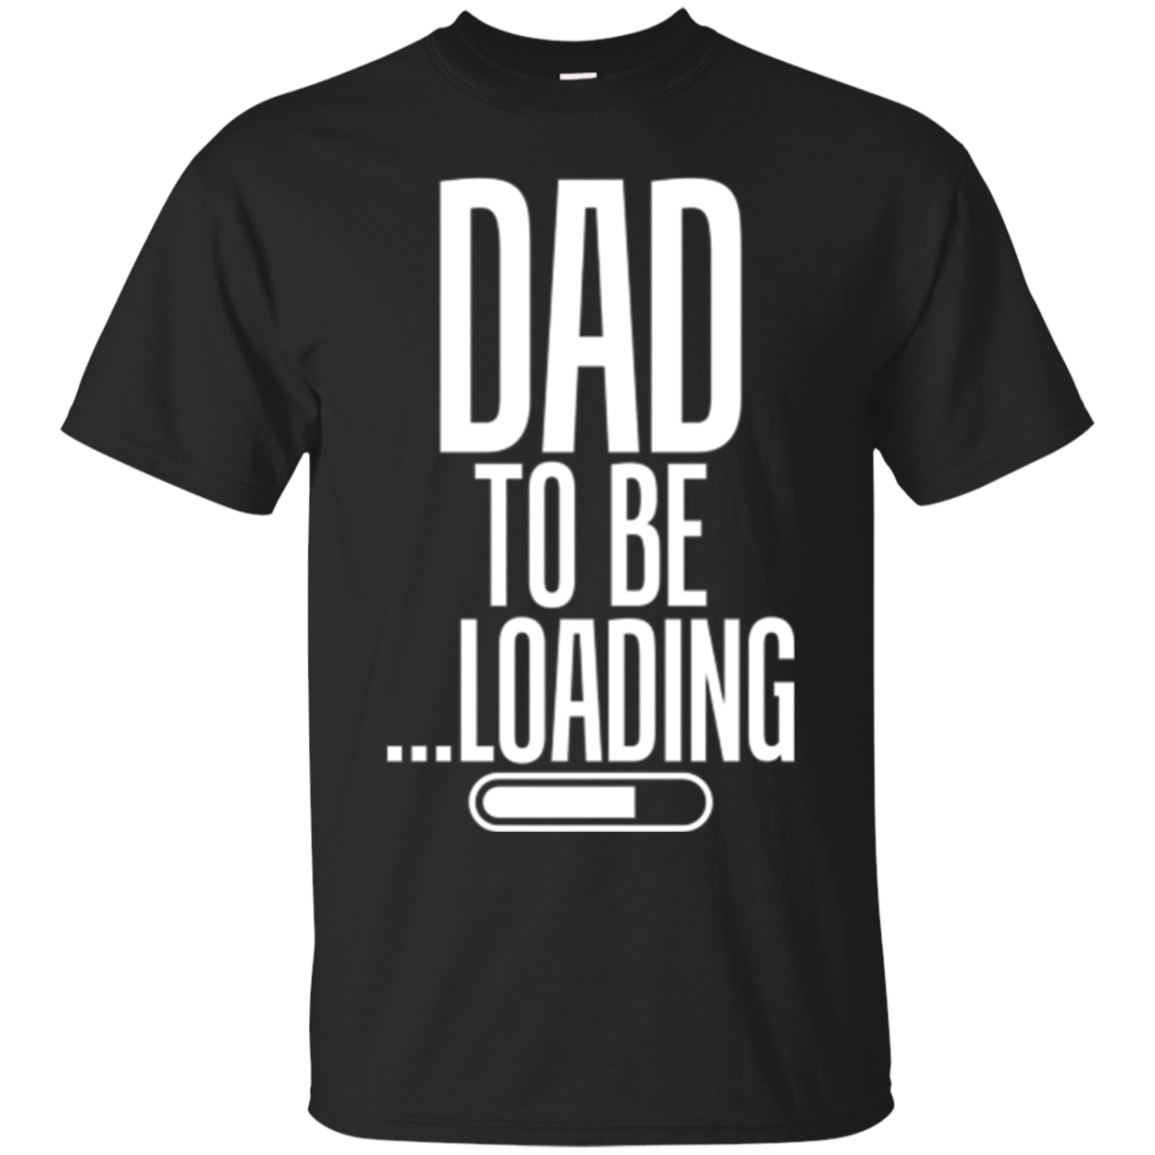 Dad To Be Loading First Time Dad Tshirt - Mens Funny Dad Tee